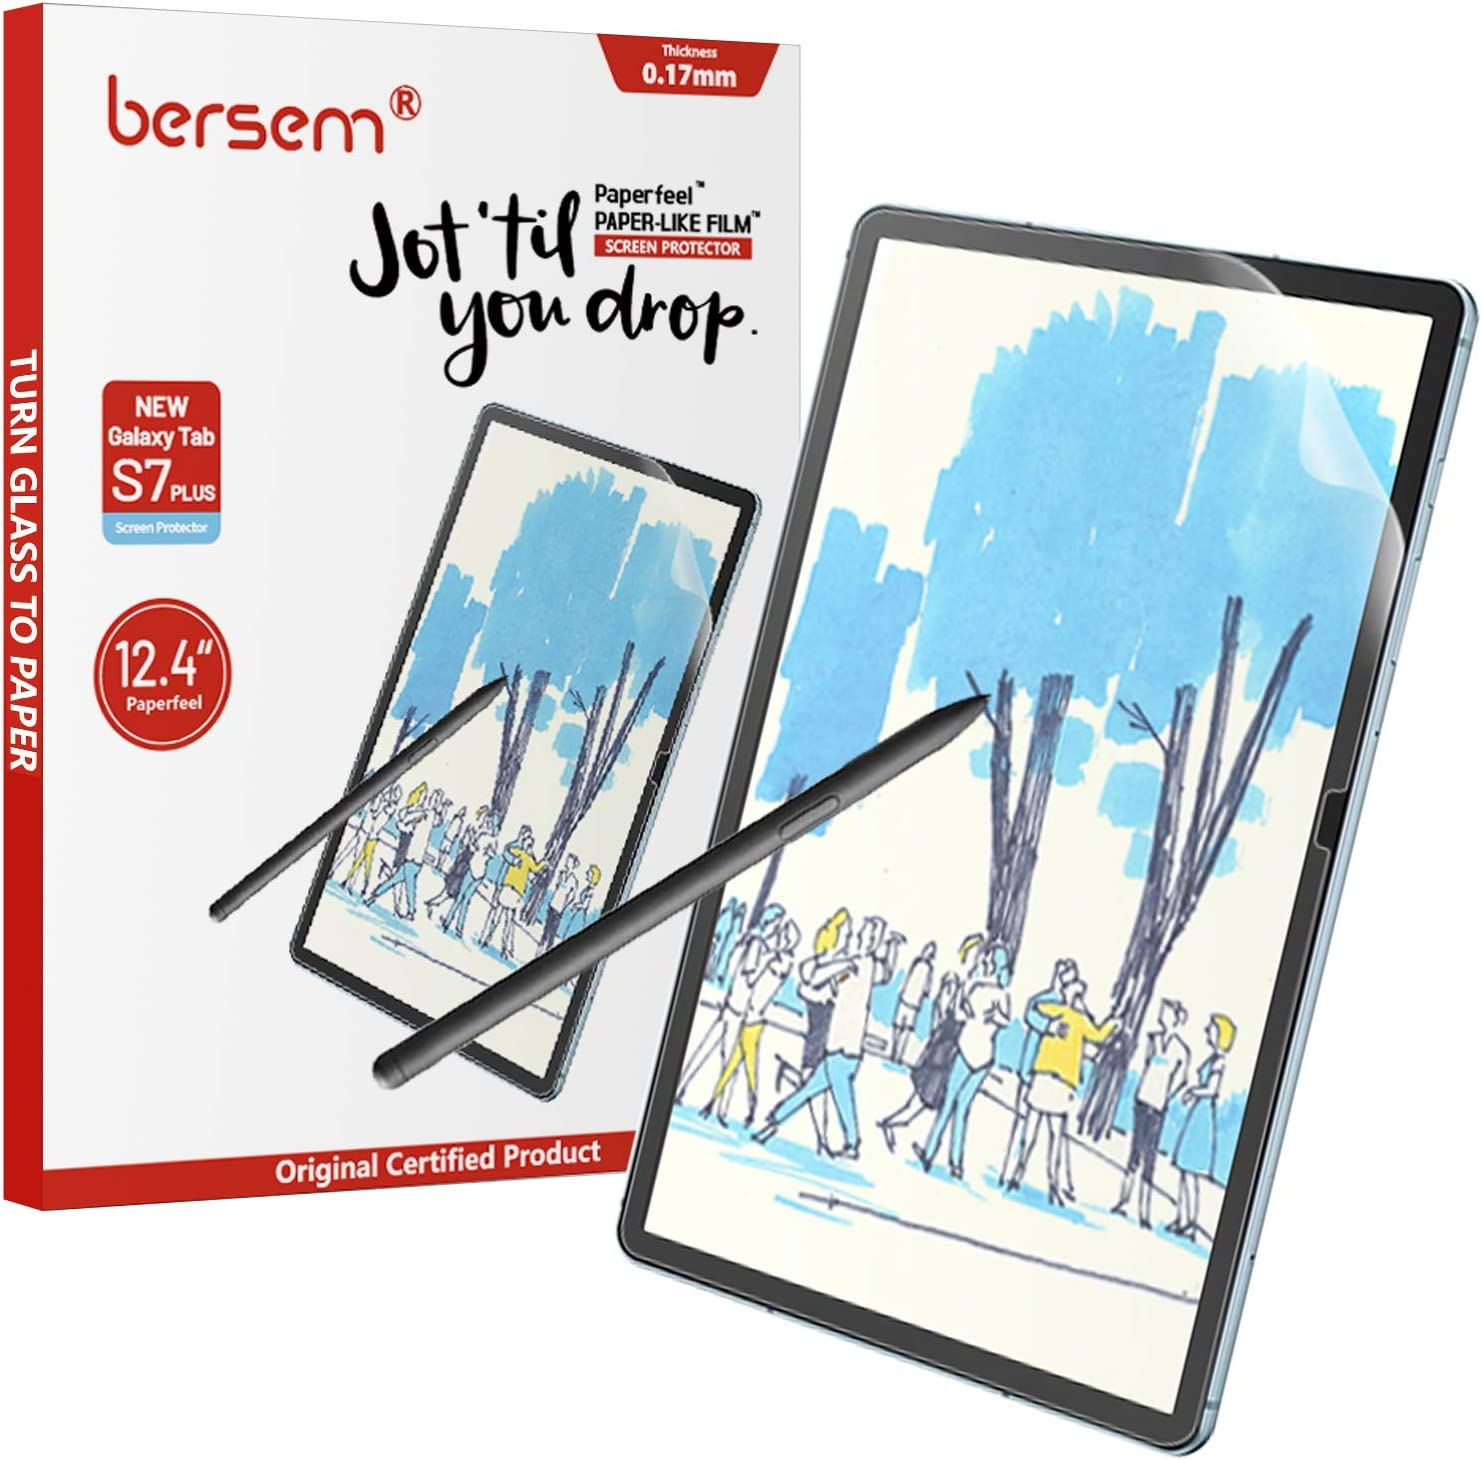 BERSEM[2 PACK]Paperfeel Screen Protector Compatible with Samsung Galaxy Tab S7 FE 2021 / Galaxy Tab S7 Plus 12.4 inch,Anti Glare with Easy Installation Kit Write and Draw Like on Paper